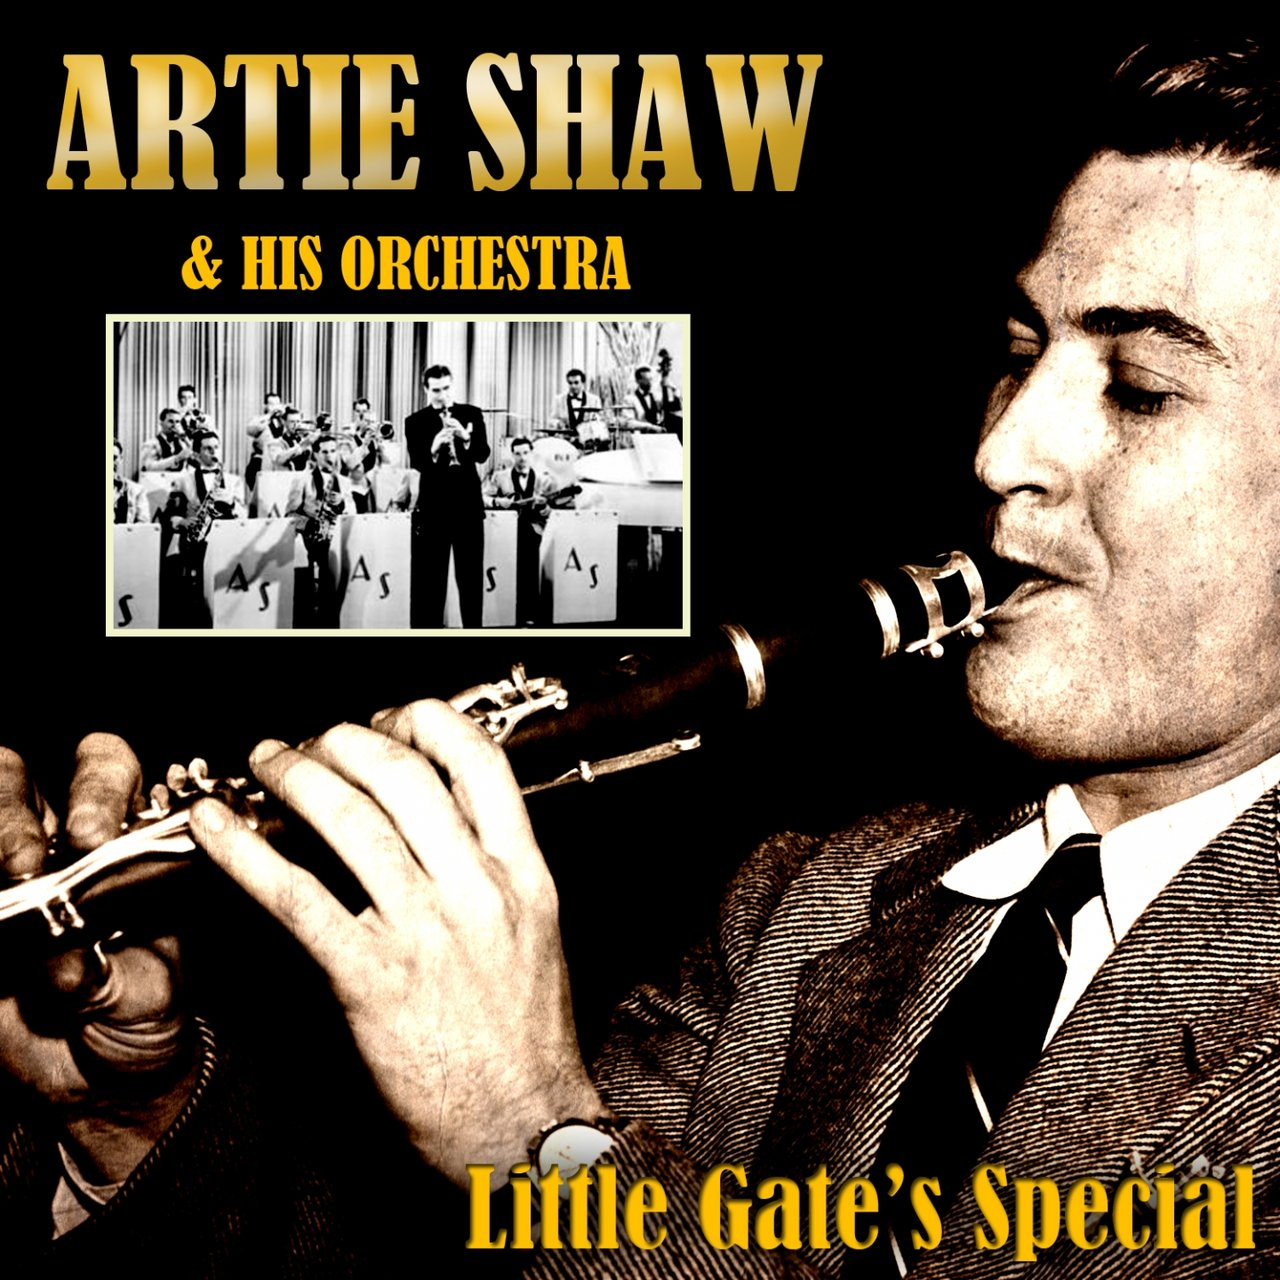 Artie Shaw Yesterdays Listen To Little Gate S Special By Artie Shaw And His Orchestra On